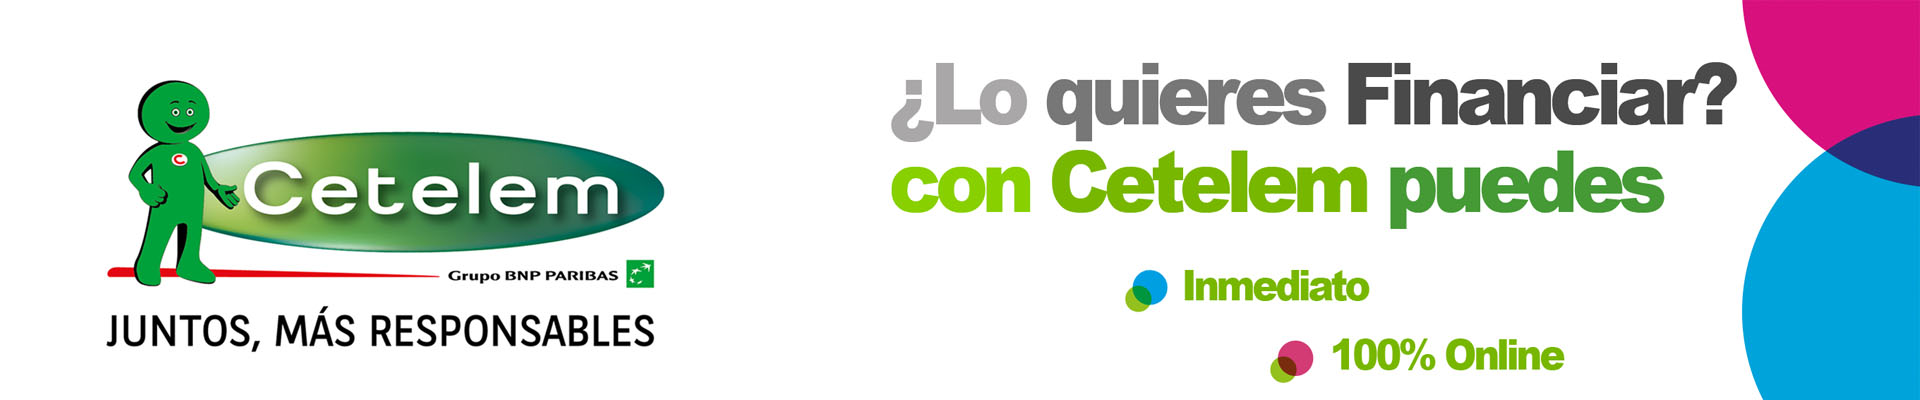 Financiacion sin intereses cetelem